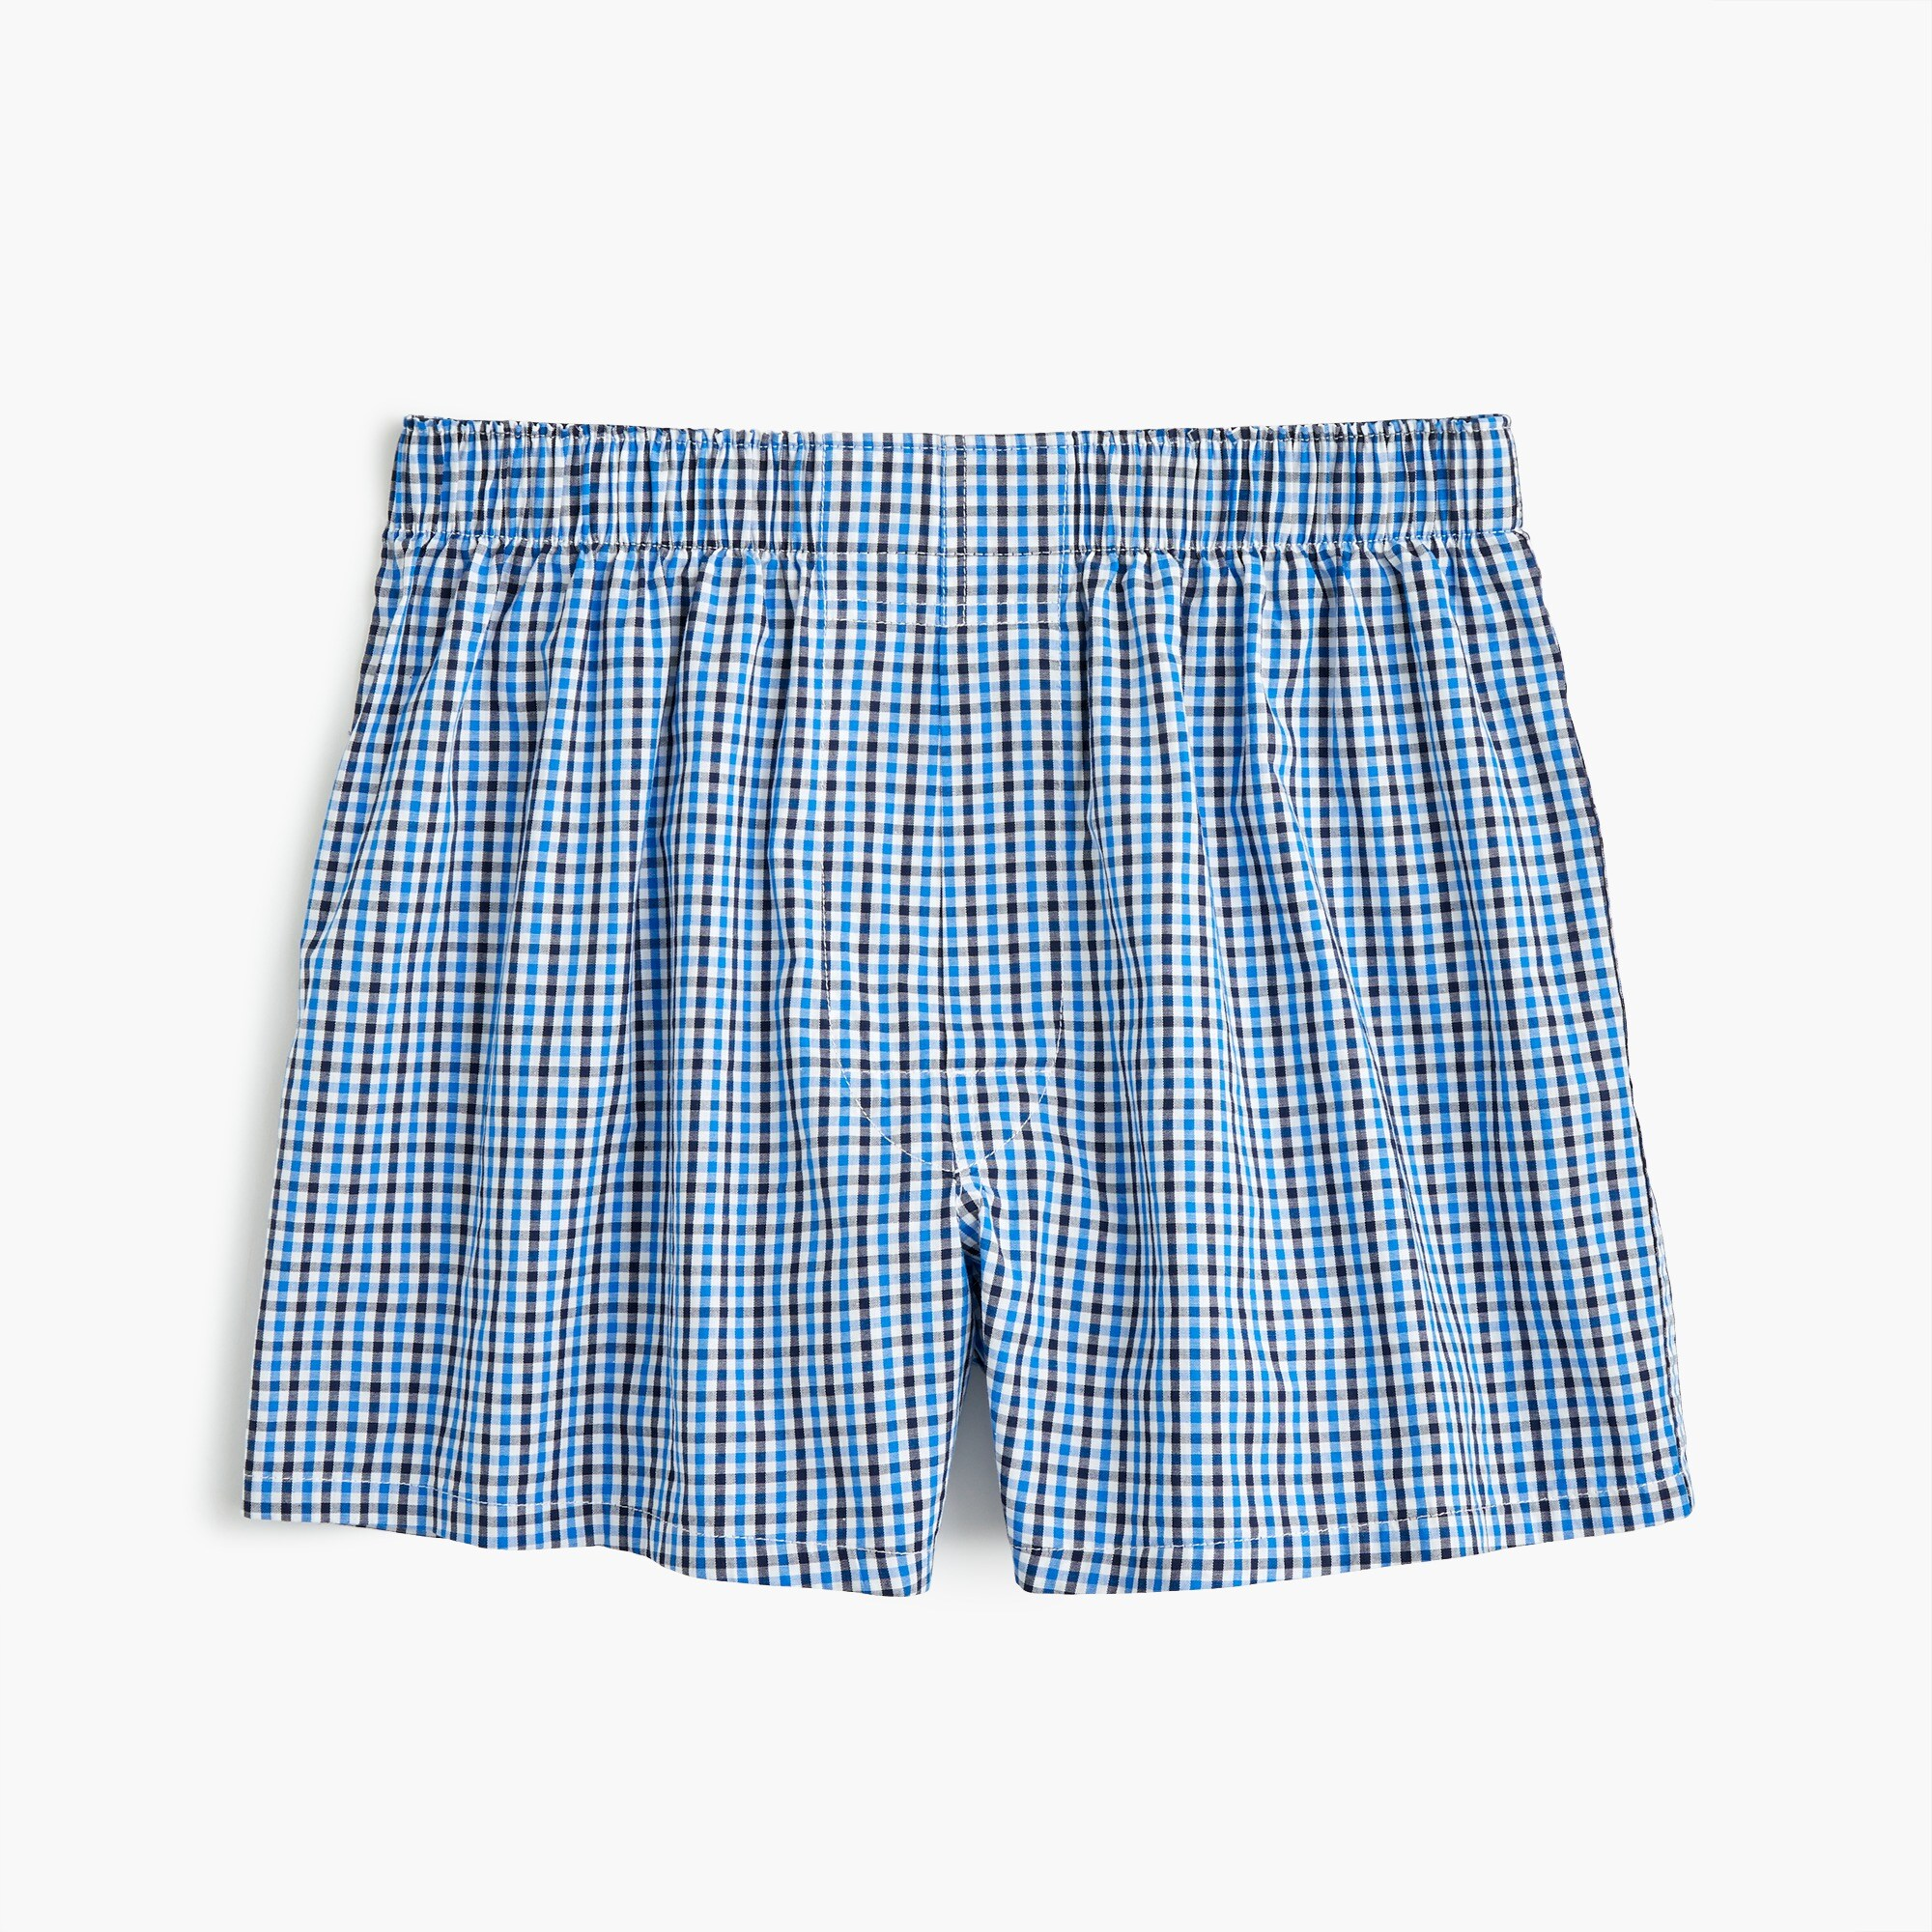 mens Tattersall boxers